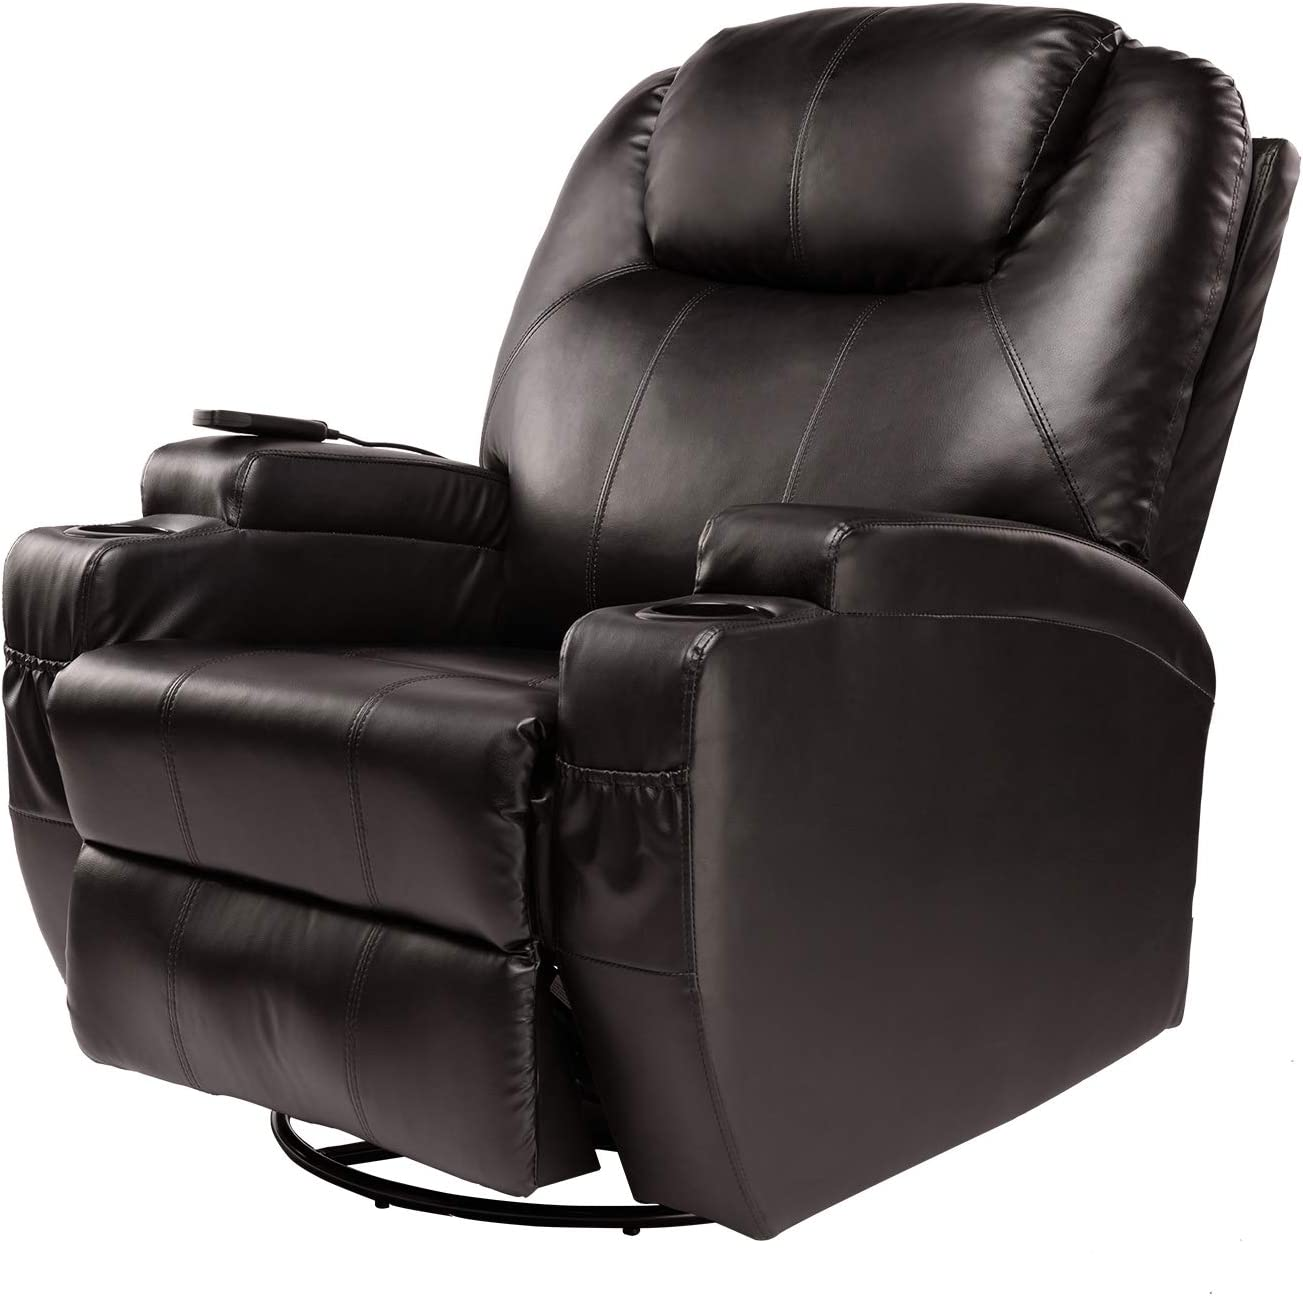 BAHOM 9 in 1 Massage Recliner Chair, 360 Swivel Ergonomic Lounge Chair with Remote Control, PU Leather with Headrest Adjustable Brown